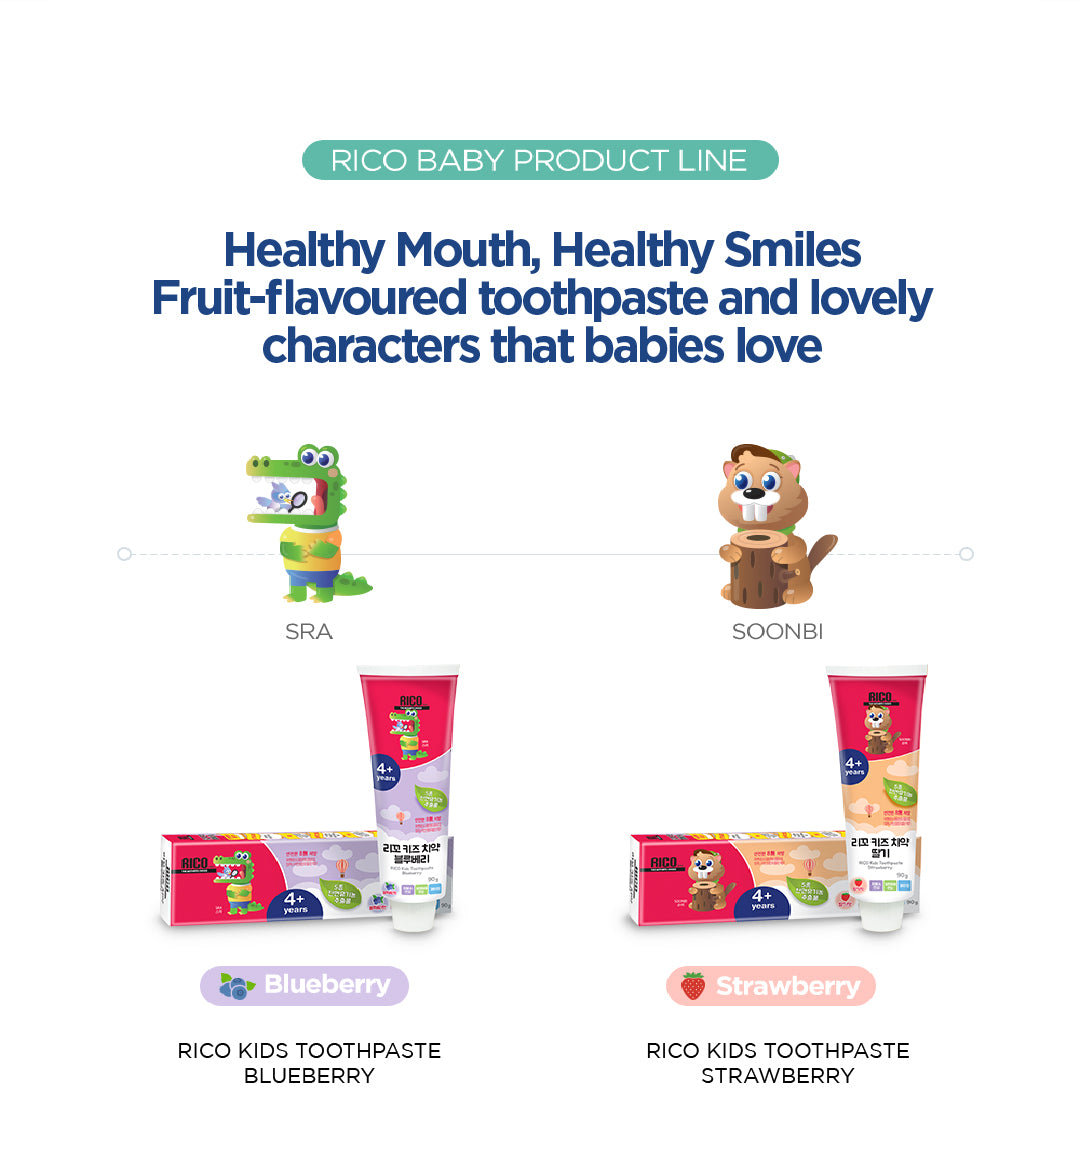 RICO Kids Toothpaste Sweet Fruit Flavour